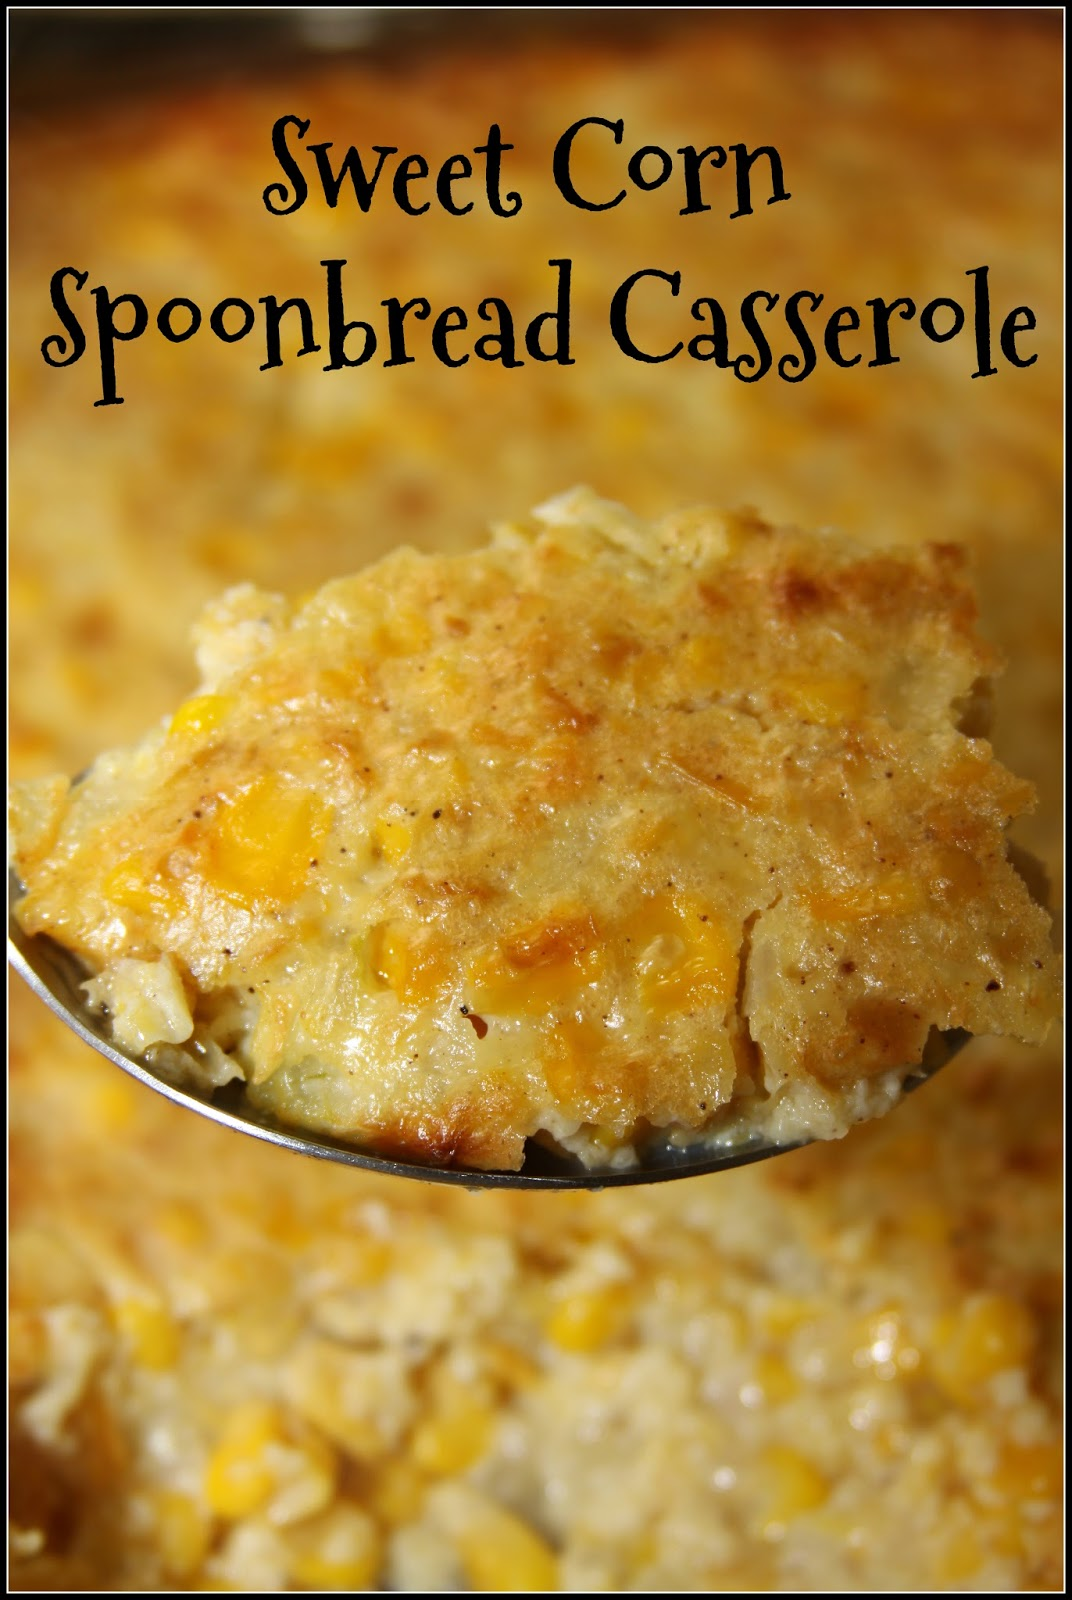 For the Love of Food: Sweet Corn Spoonbread Casserole